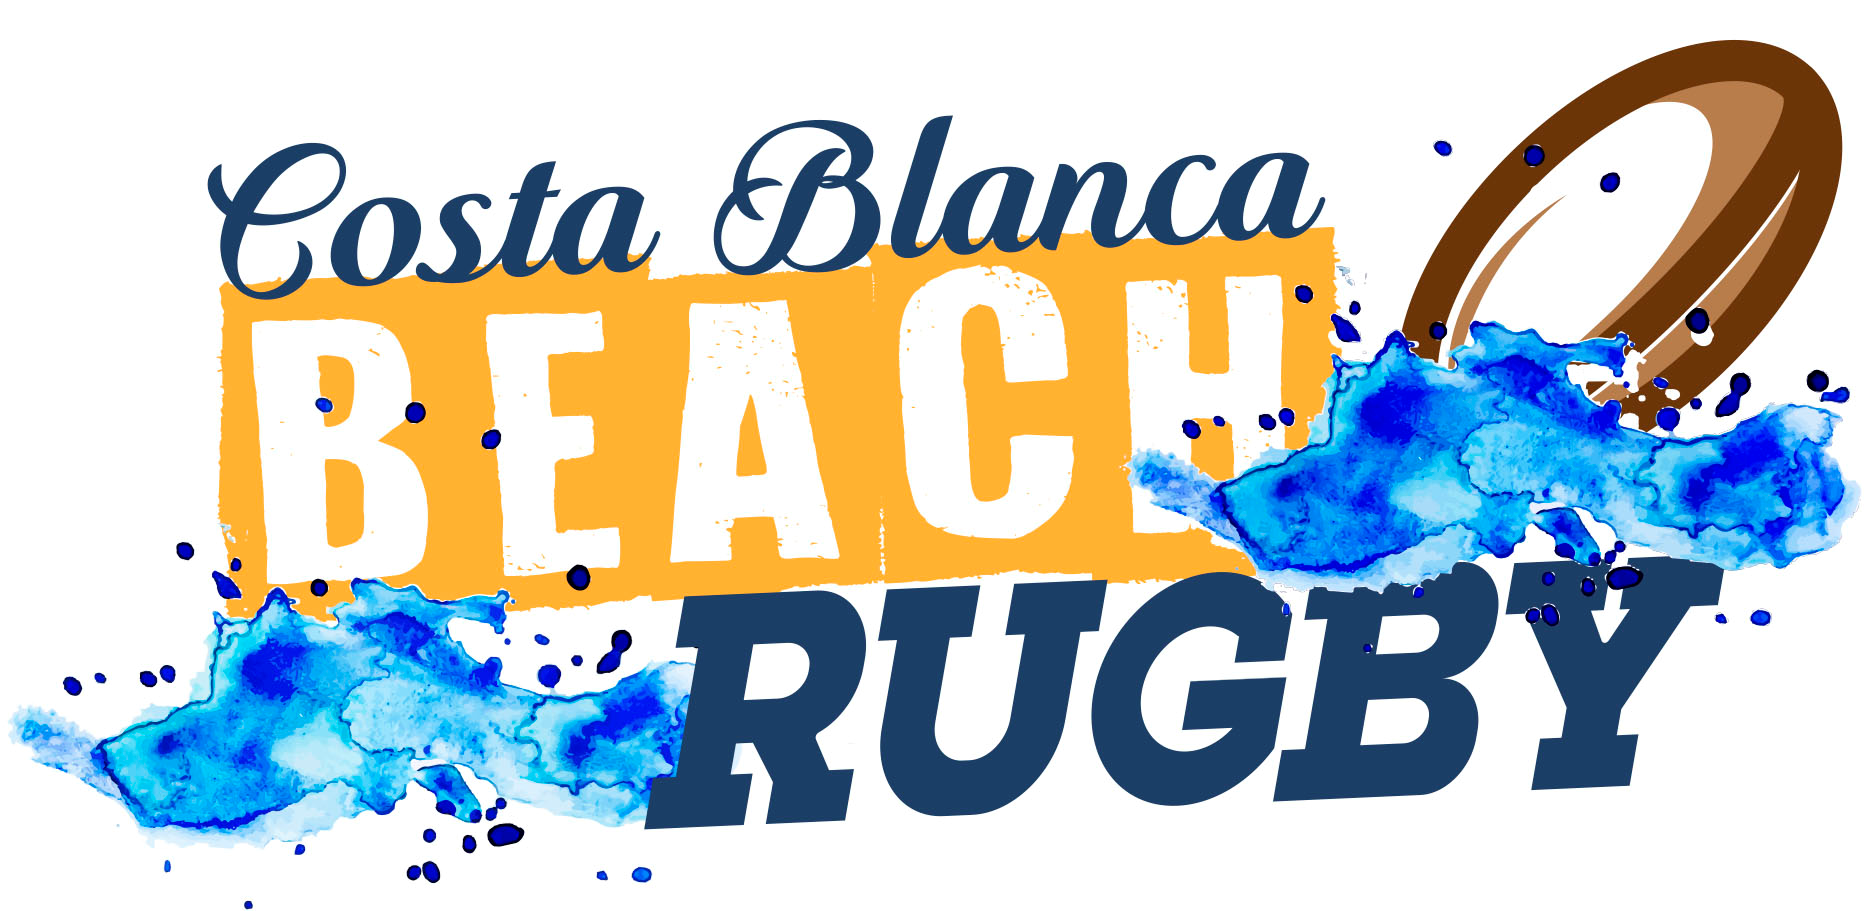 Costa Blanca Beach Rugby